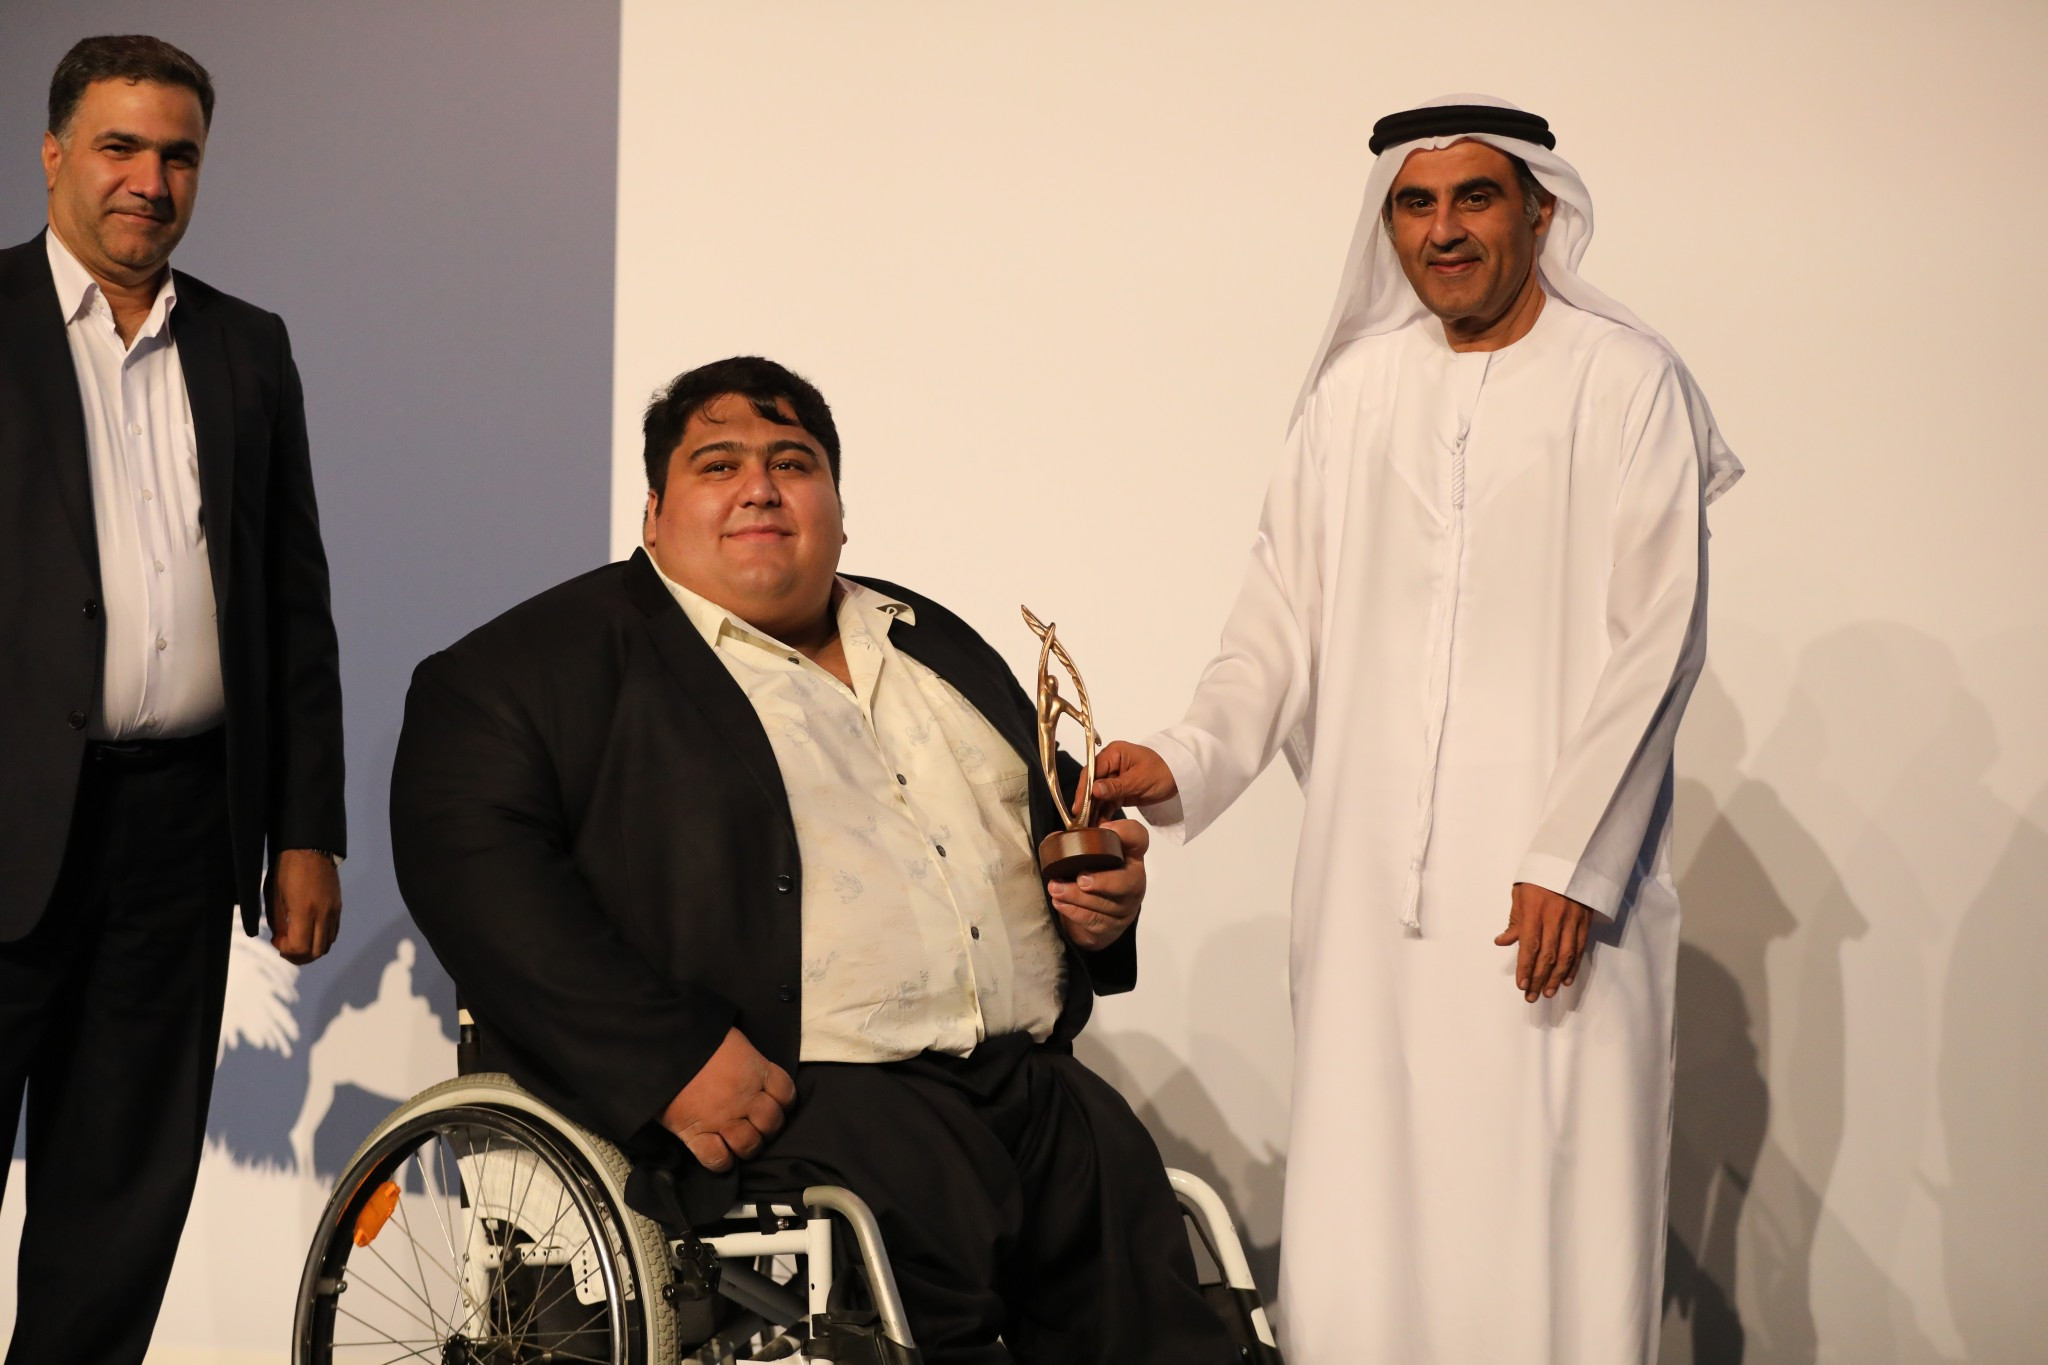 Iranian powerlifter Siamand Rahman won the best male prize at the 2017 Paralympic Sport Awards ©2017 IPC General Assembly LOC